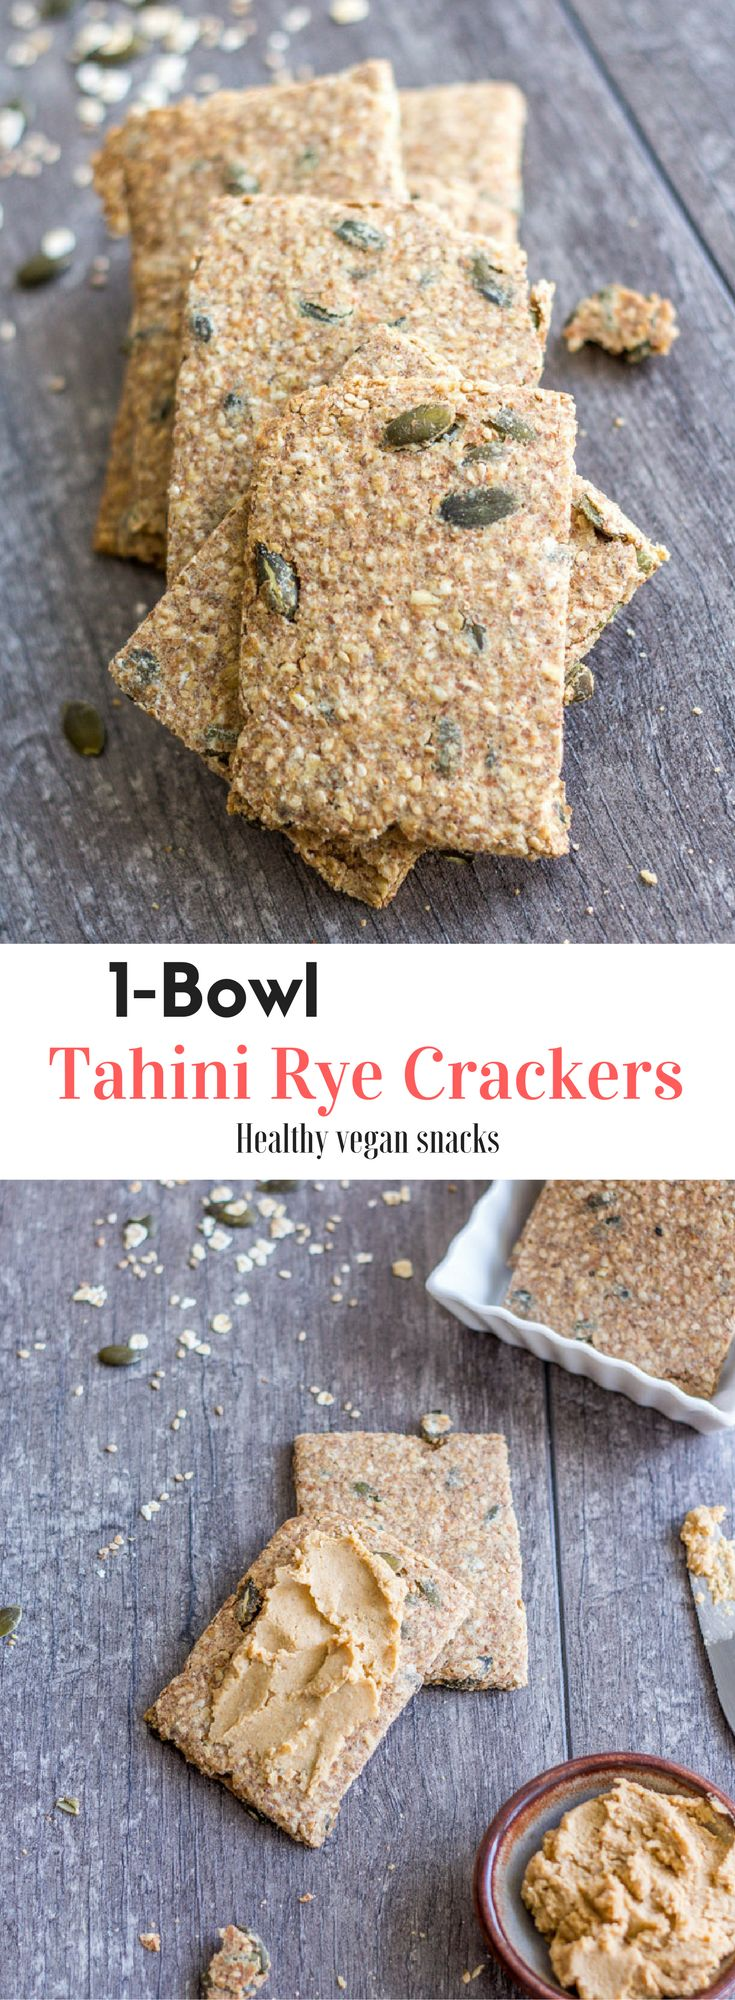 1-Bowl Tahini Rye Crackers made from rye flour, oats, seeds, and tahini. They're easy, quick, healthy, and tasty. A great vegan snack! Healthy vegan recipes|healthy| vegan| snack| dessert| recipes| vegetarian| The Mostly Healthy